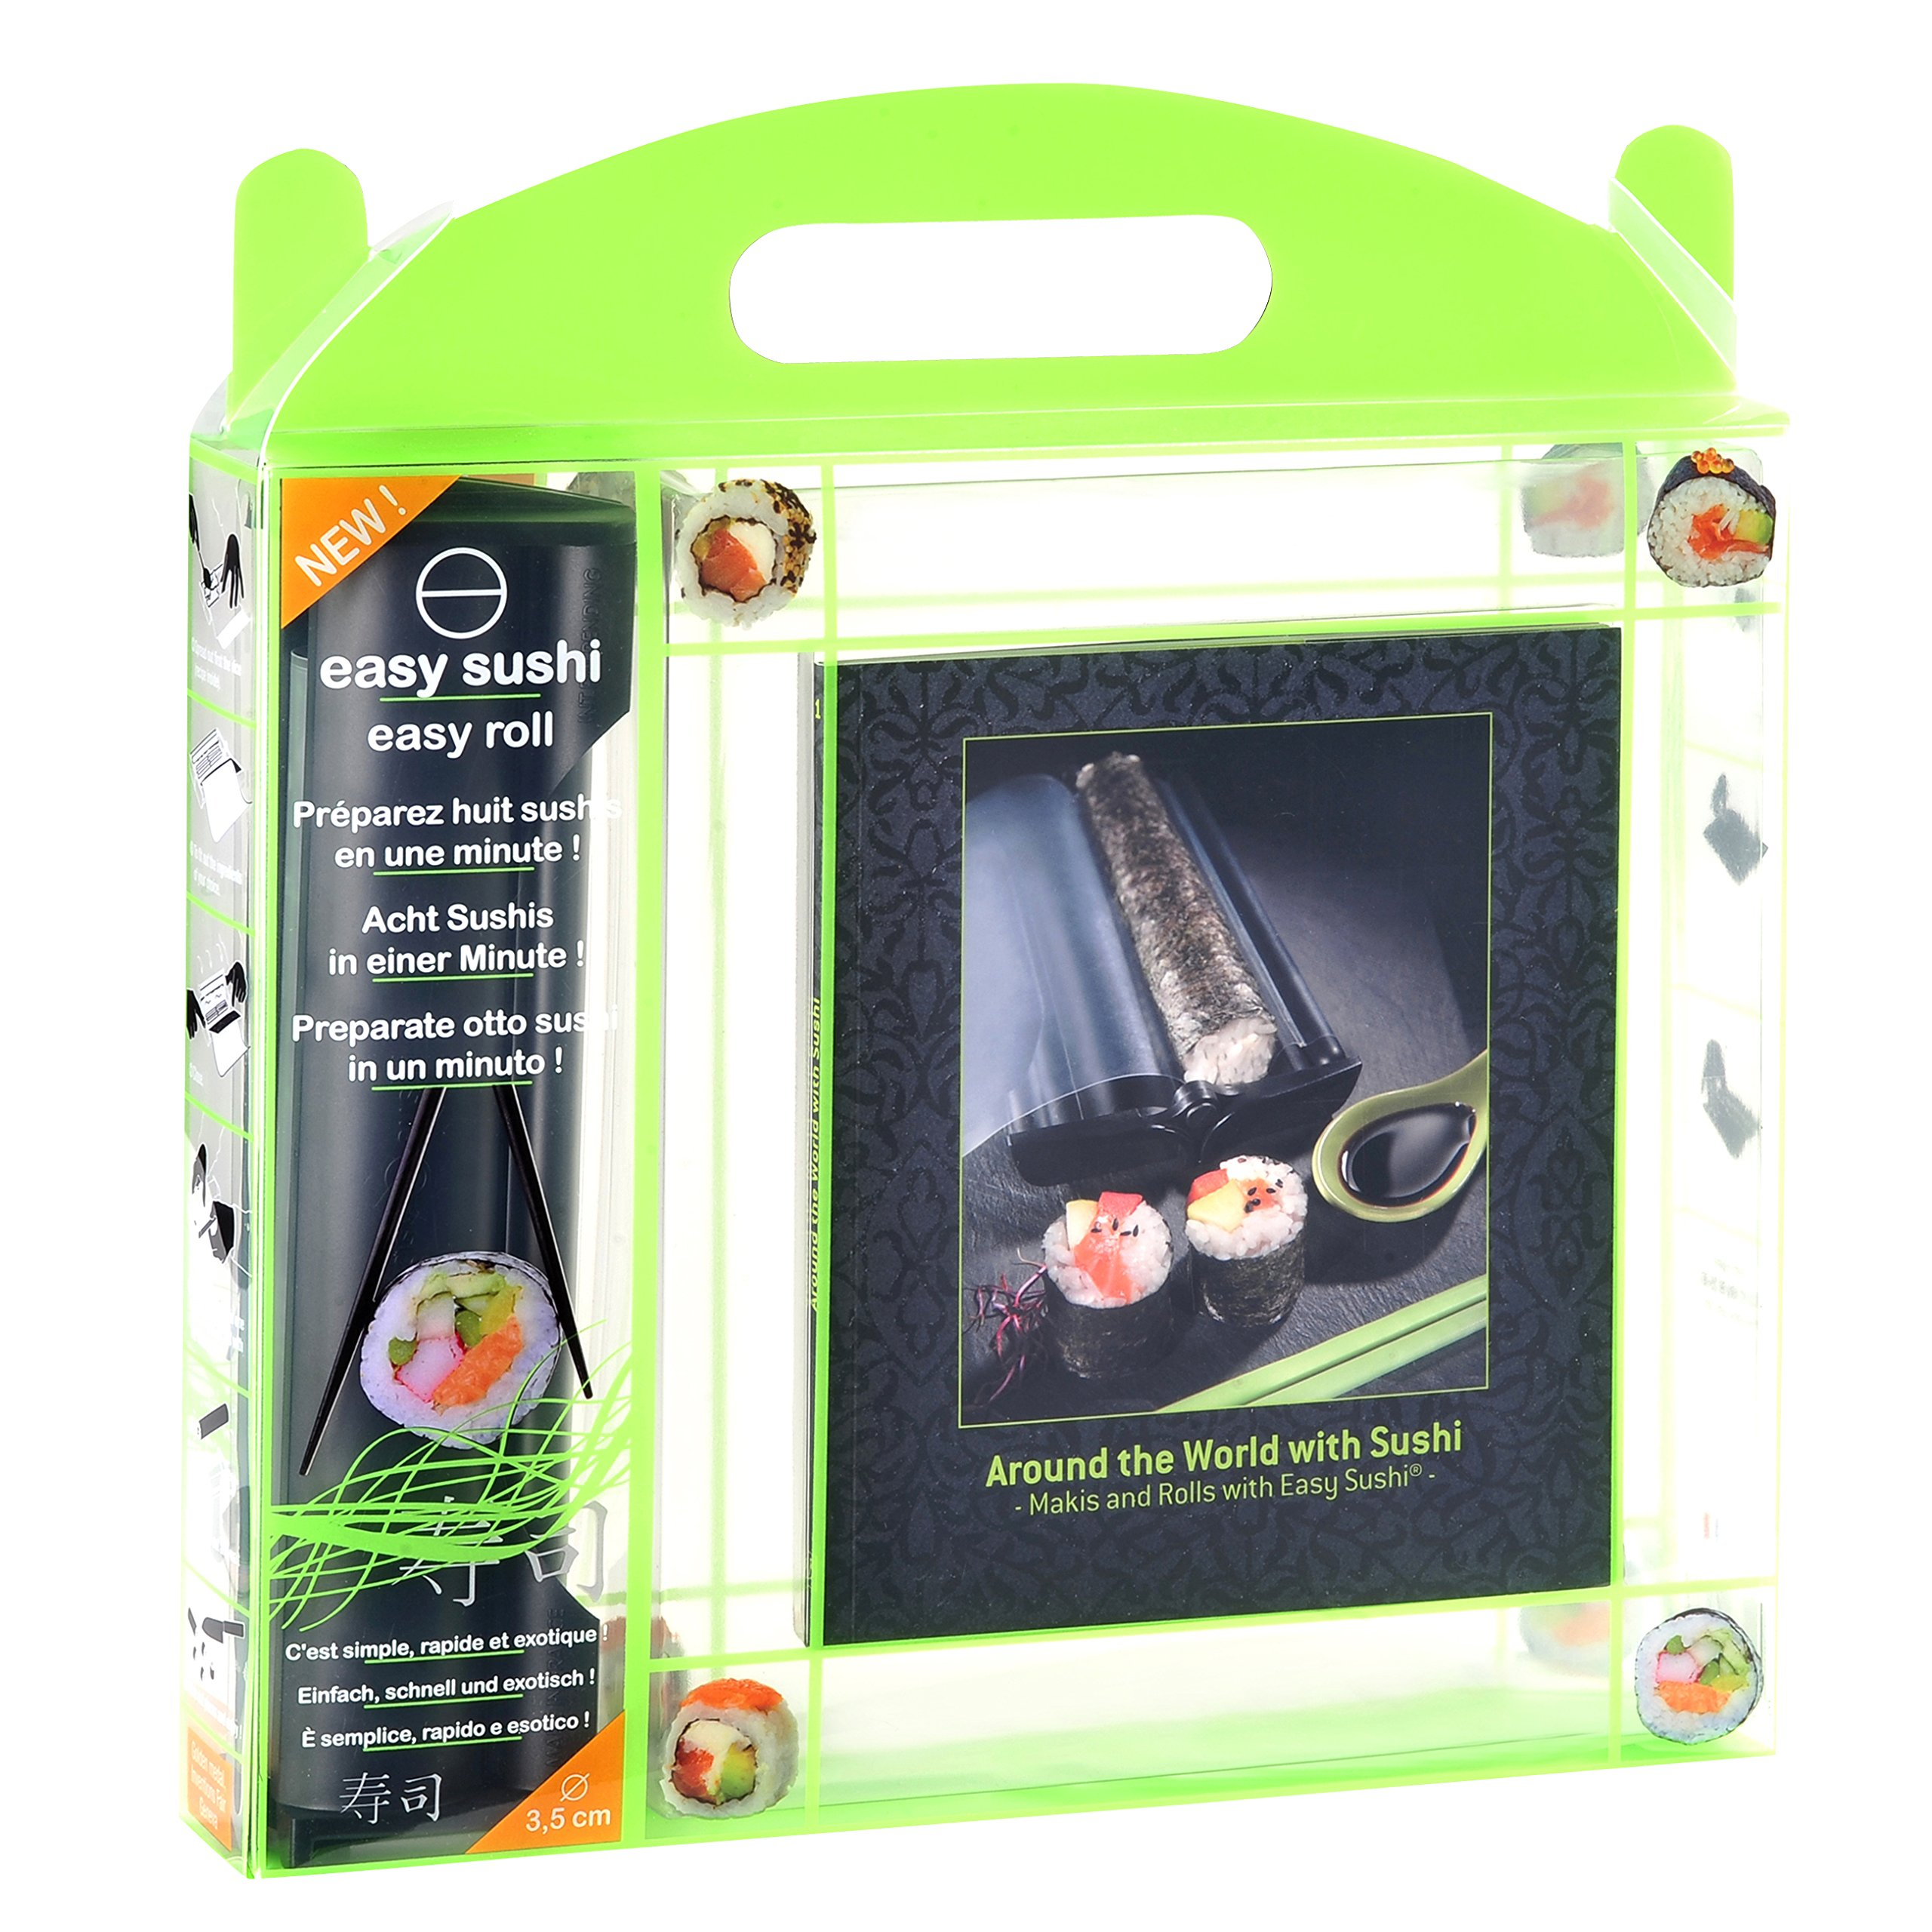 Legnoart Spicy Easy Sushi Gift Set Roller with Around the World with Sushi Recipe Book, 3.5 cm/1.4'', Black